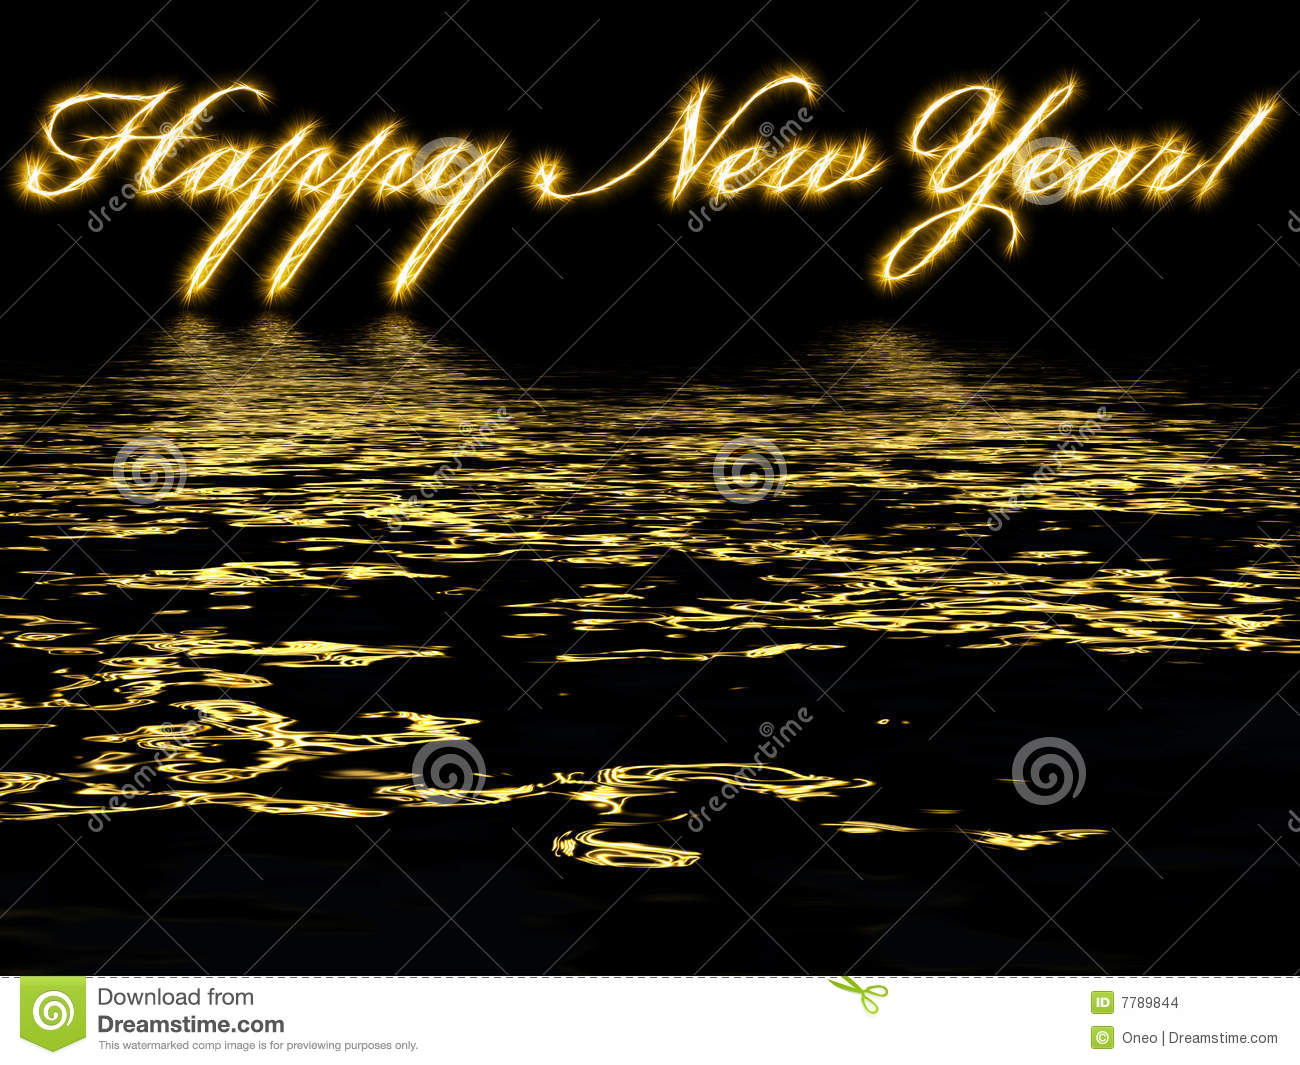 Happy New Year Written With Reflection In Water Stock